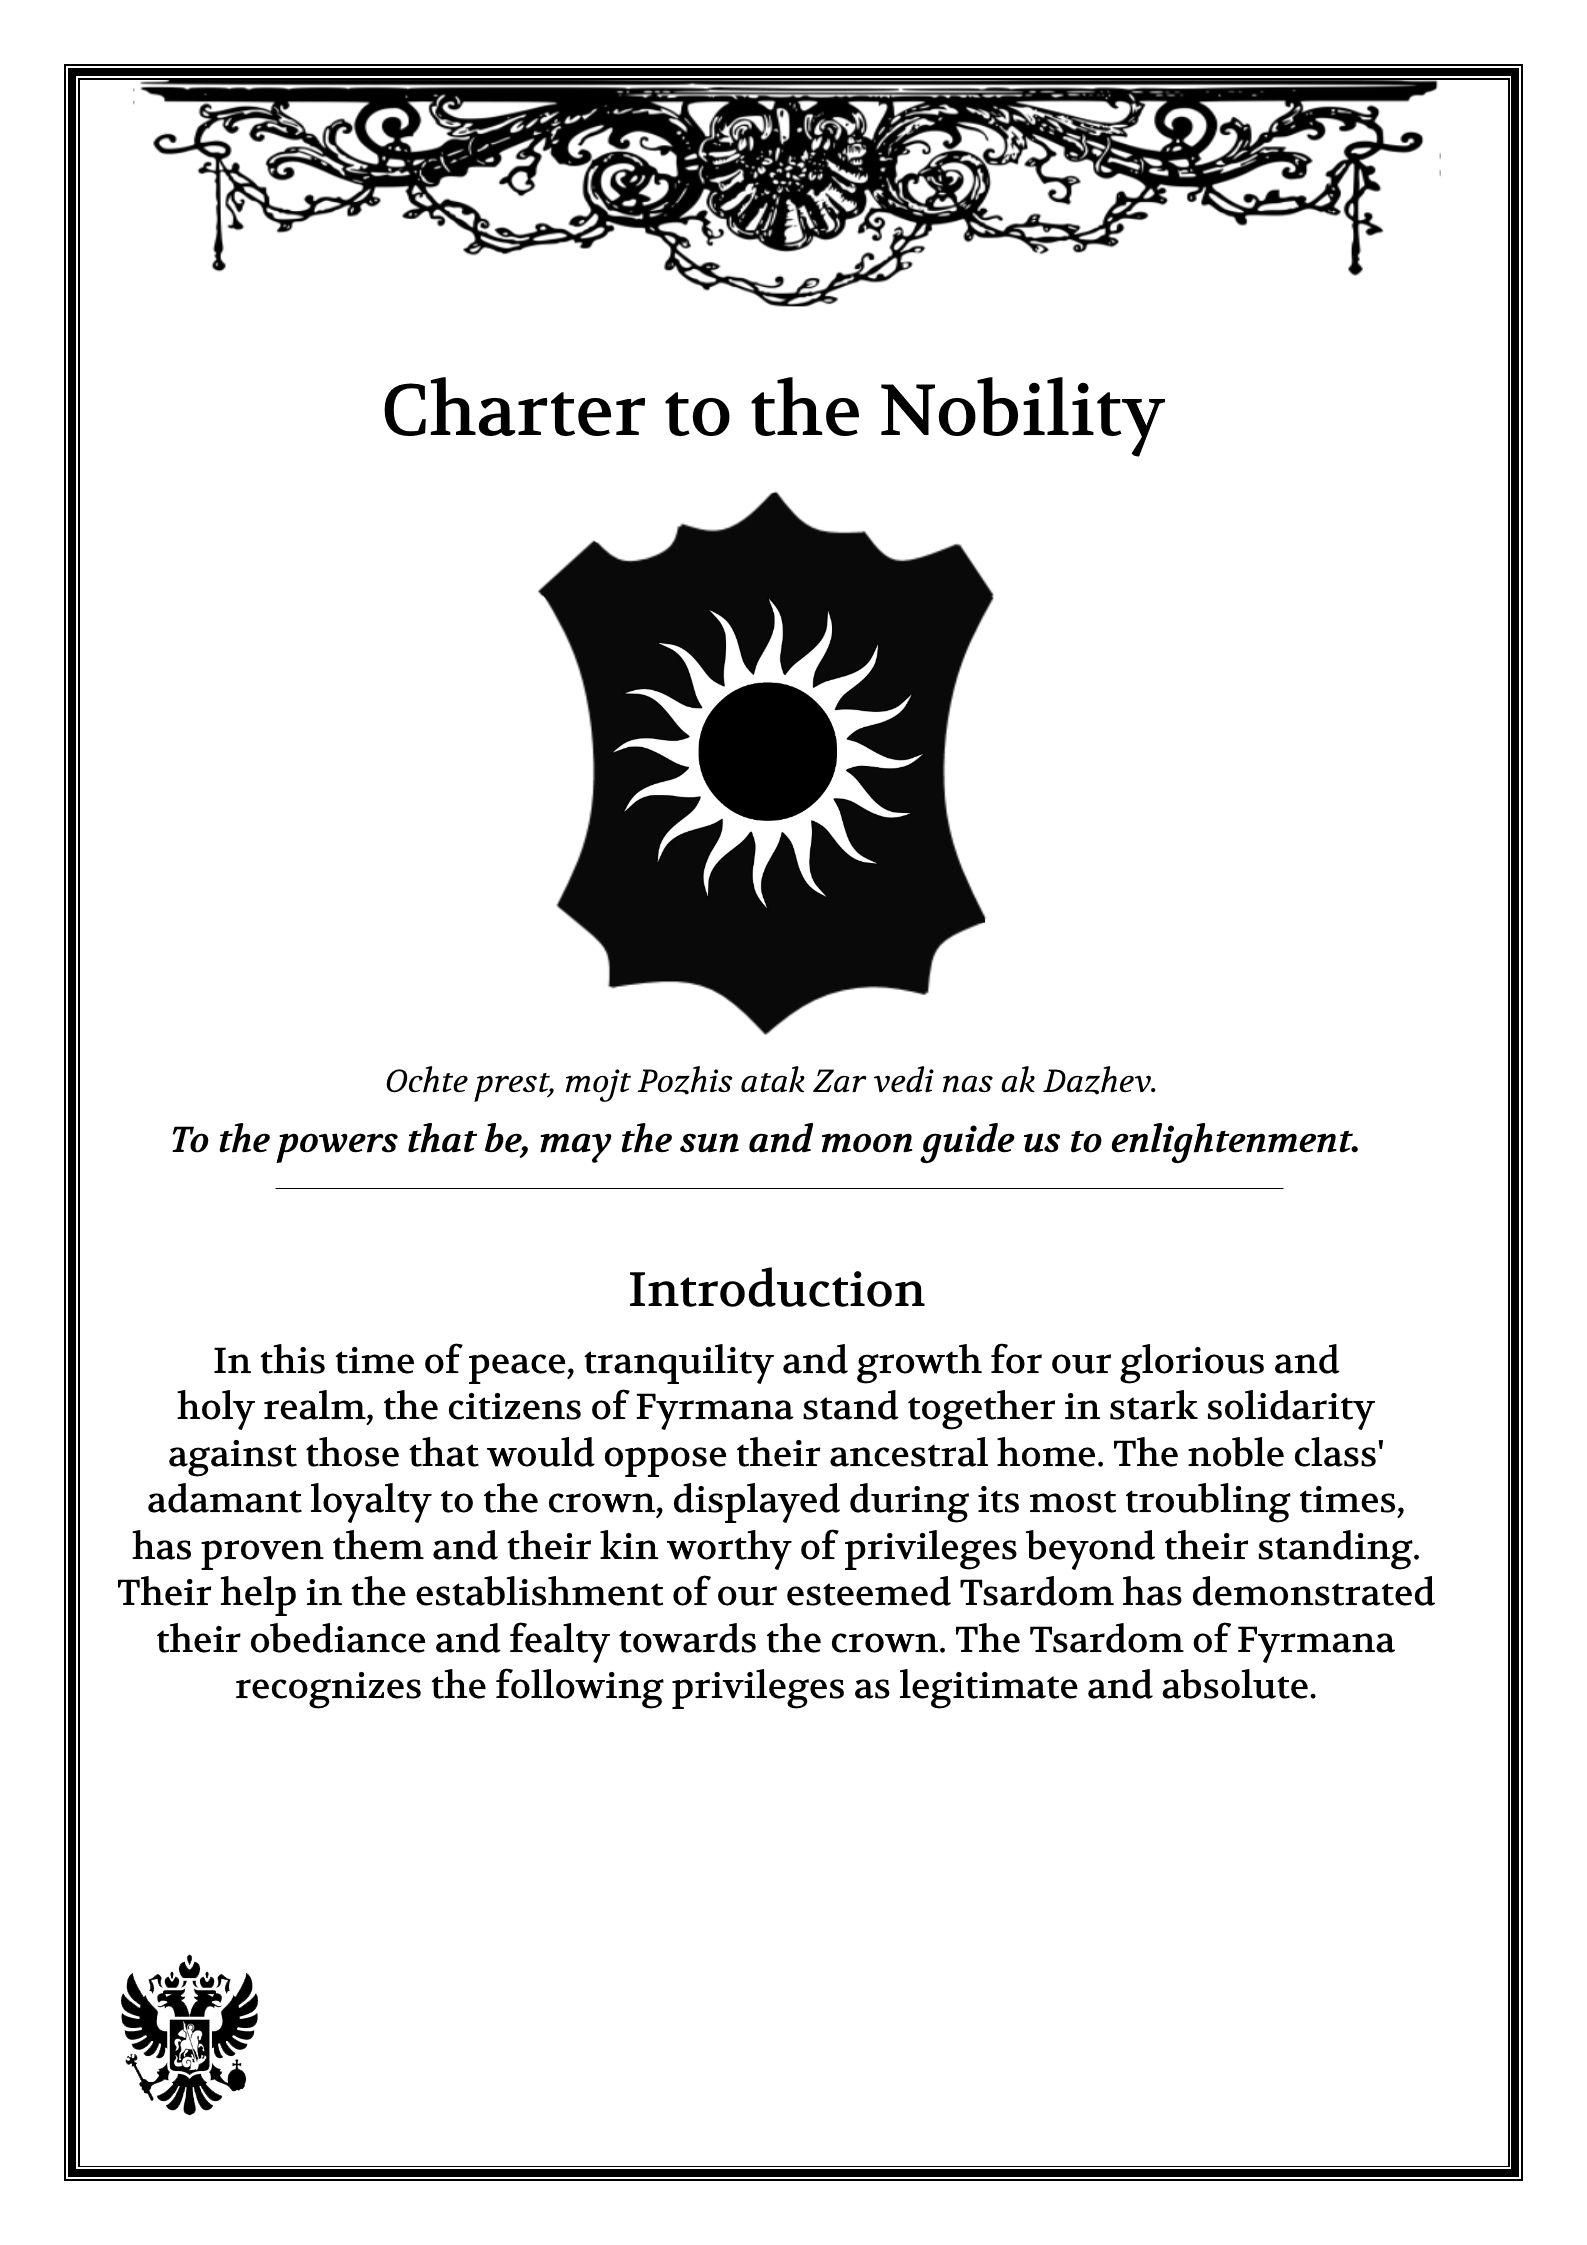 charter1.png